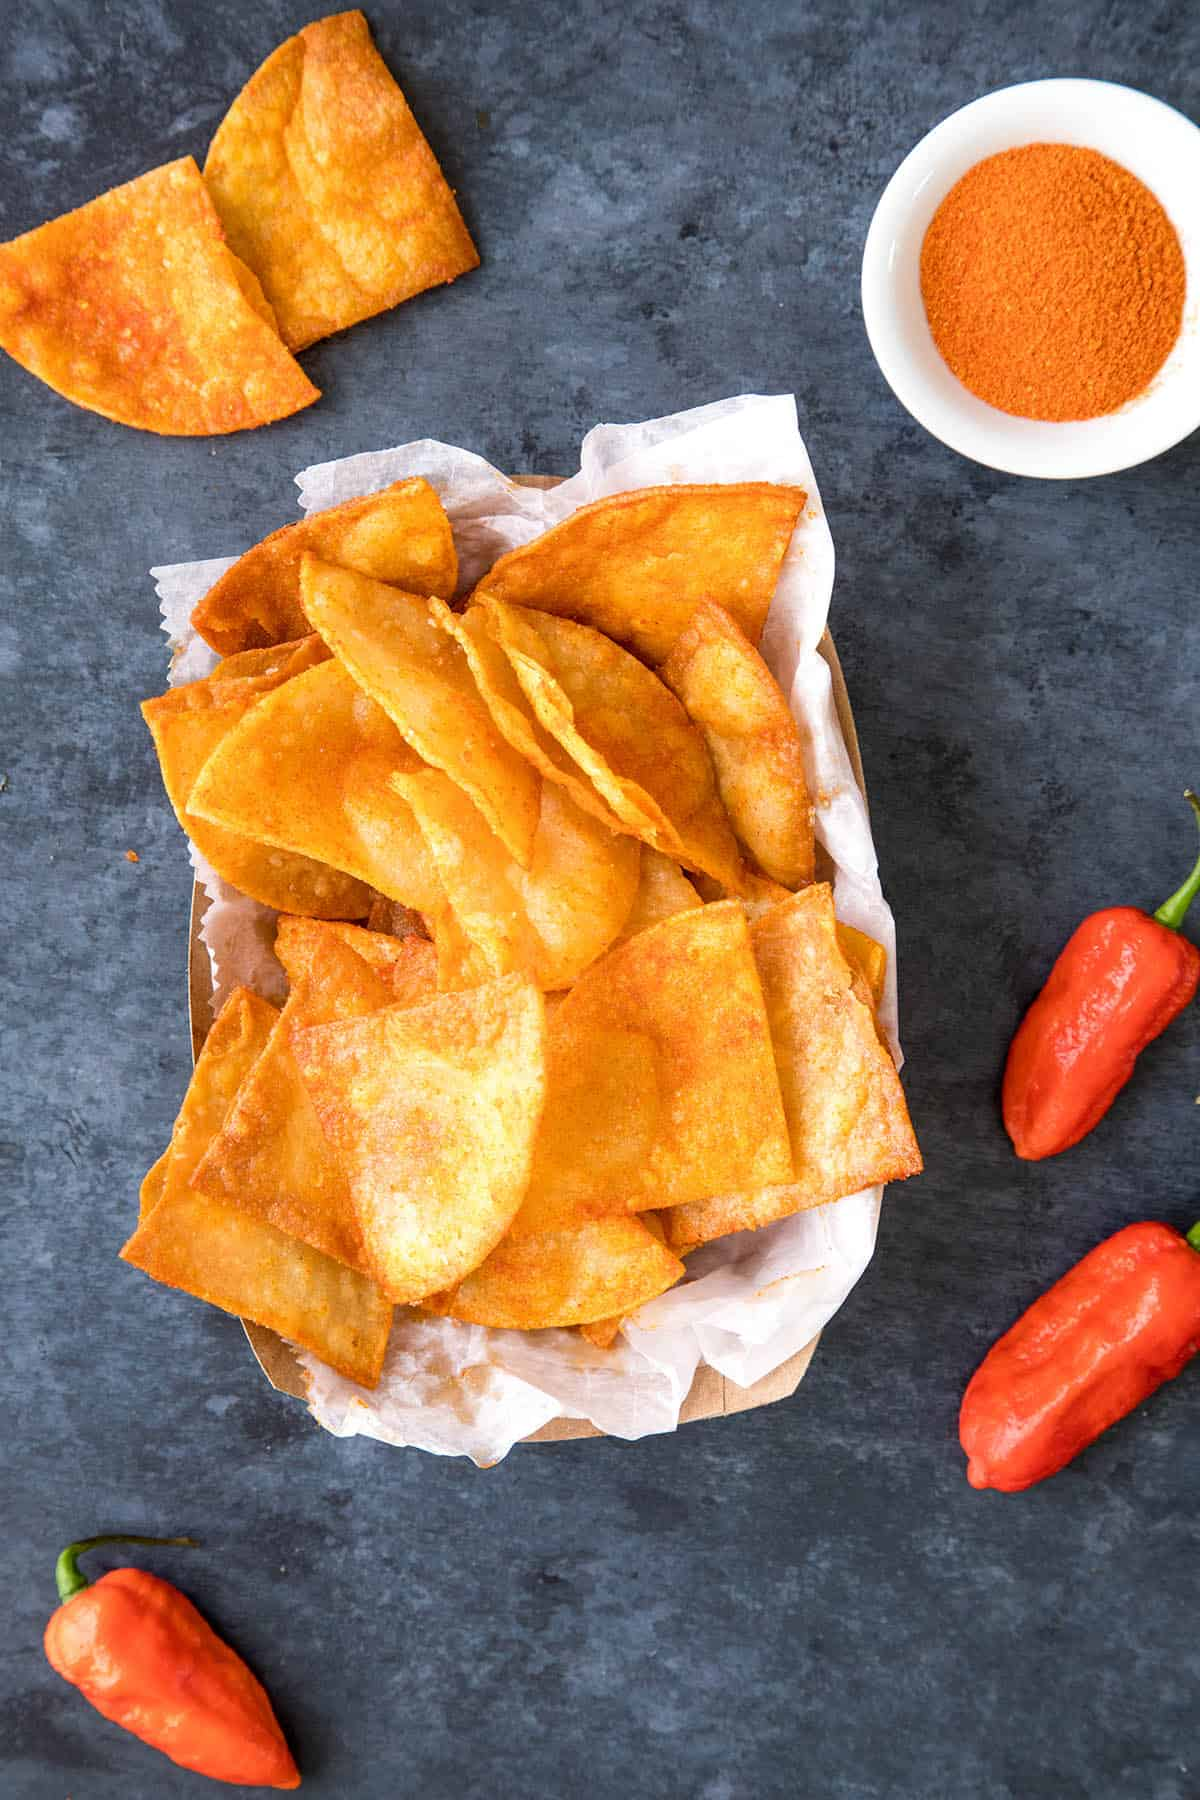 Ghost Pepper Chips - In a bowl, ready to enjoy